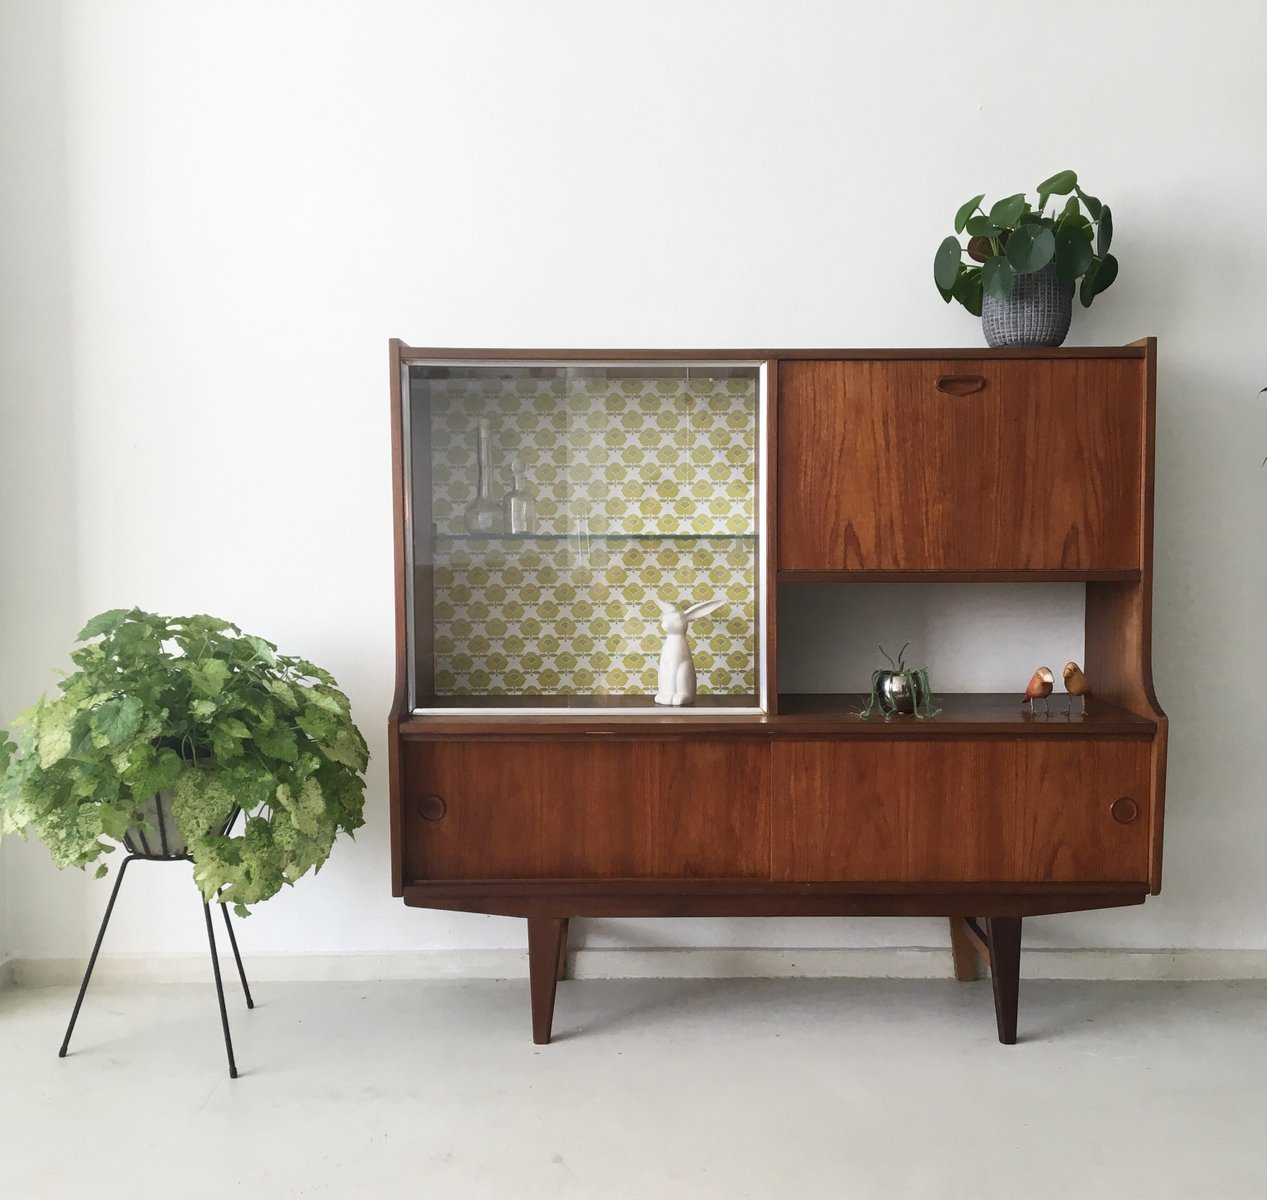 niederl ndisches mid century teak highboard mit vintage tapete bei pamono kaufen. Black Bedroom Furniture Sets. Home Design Ideas